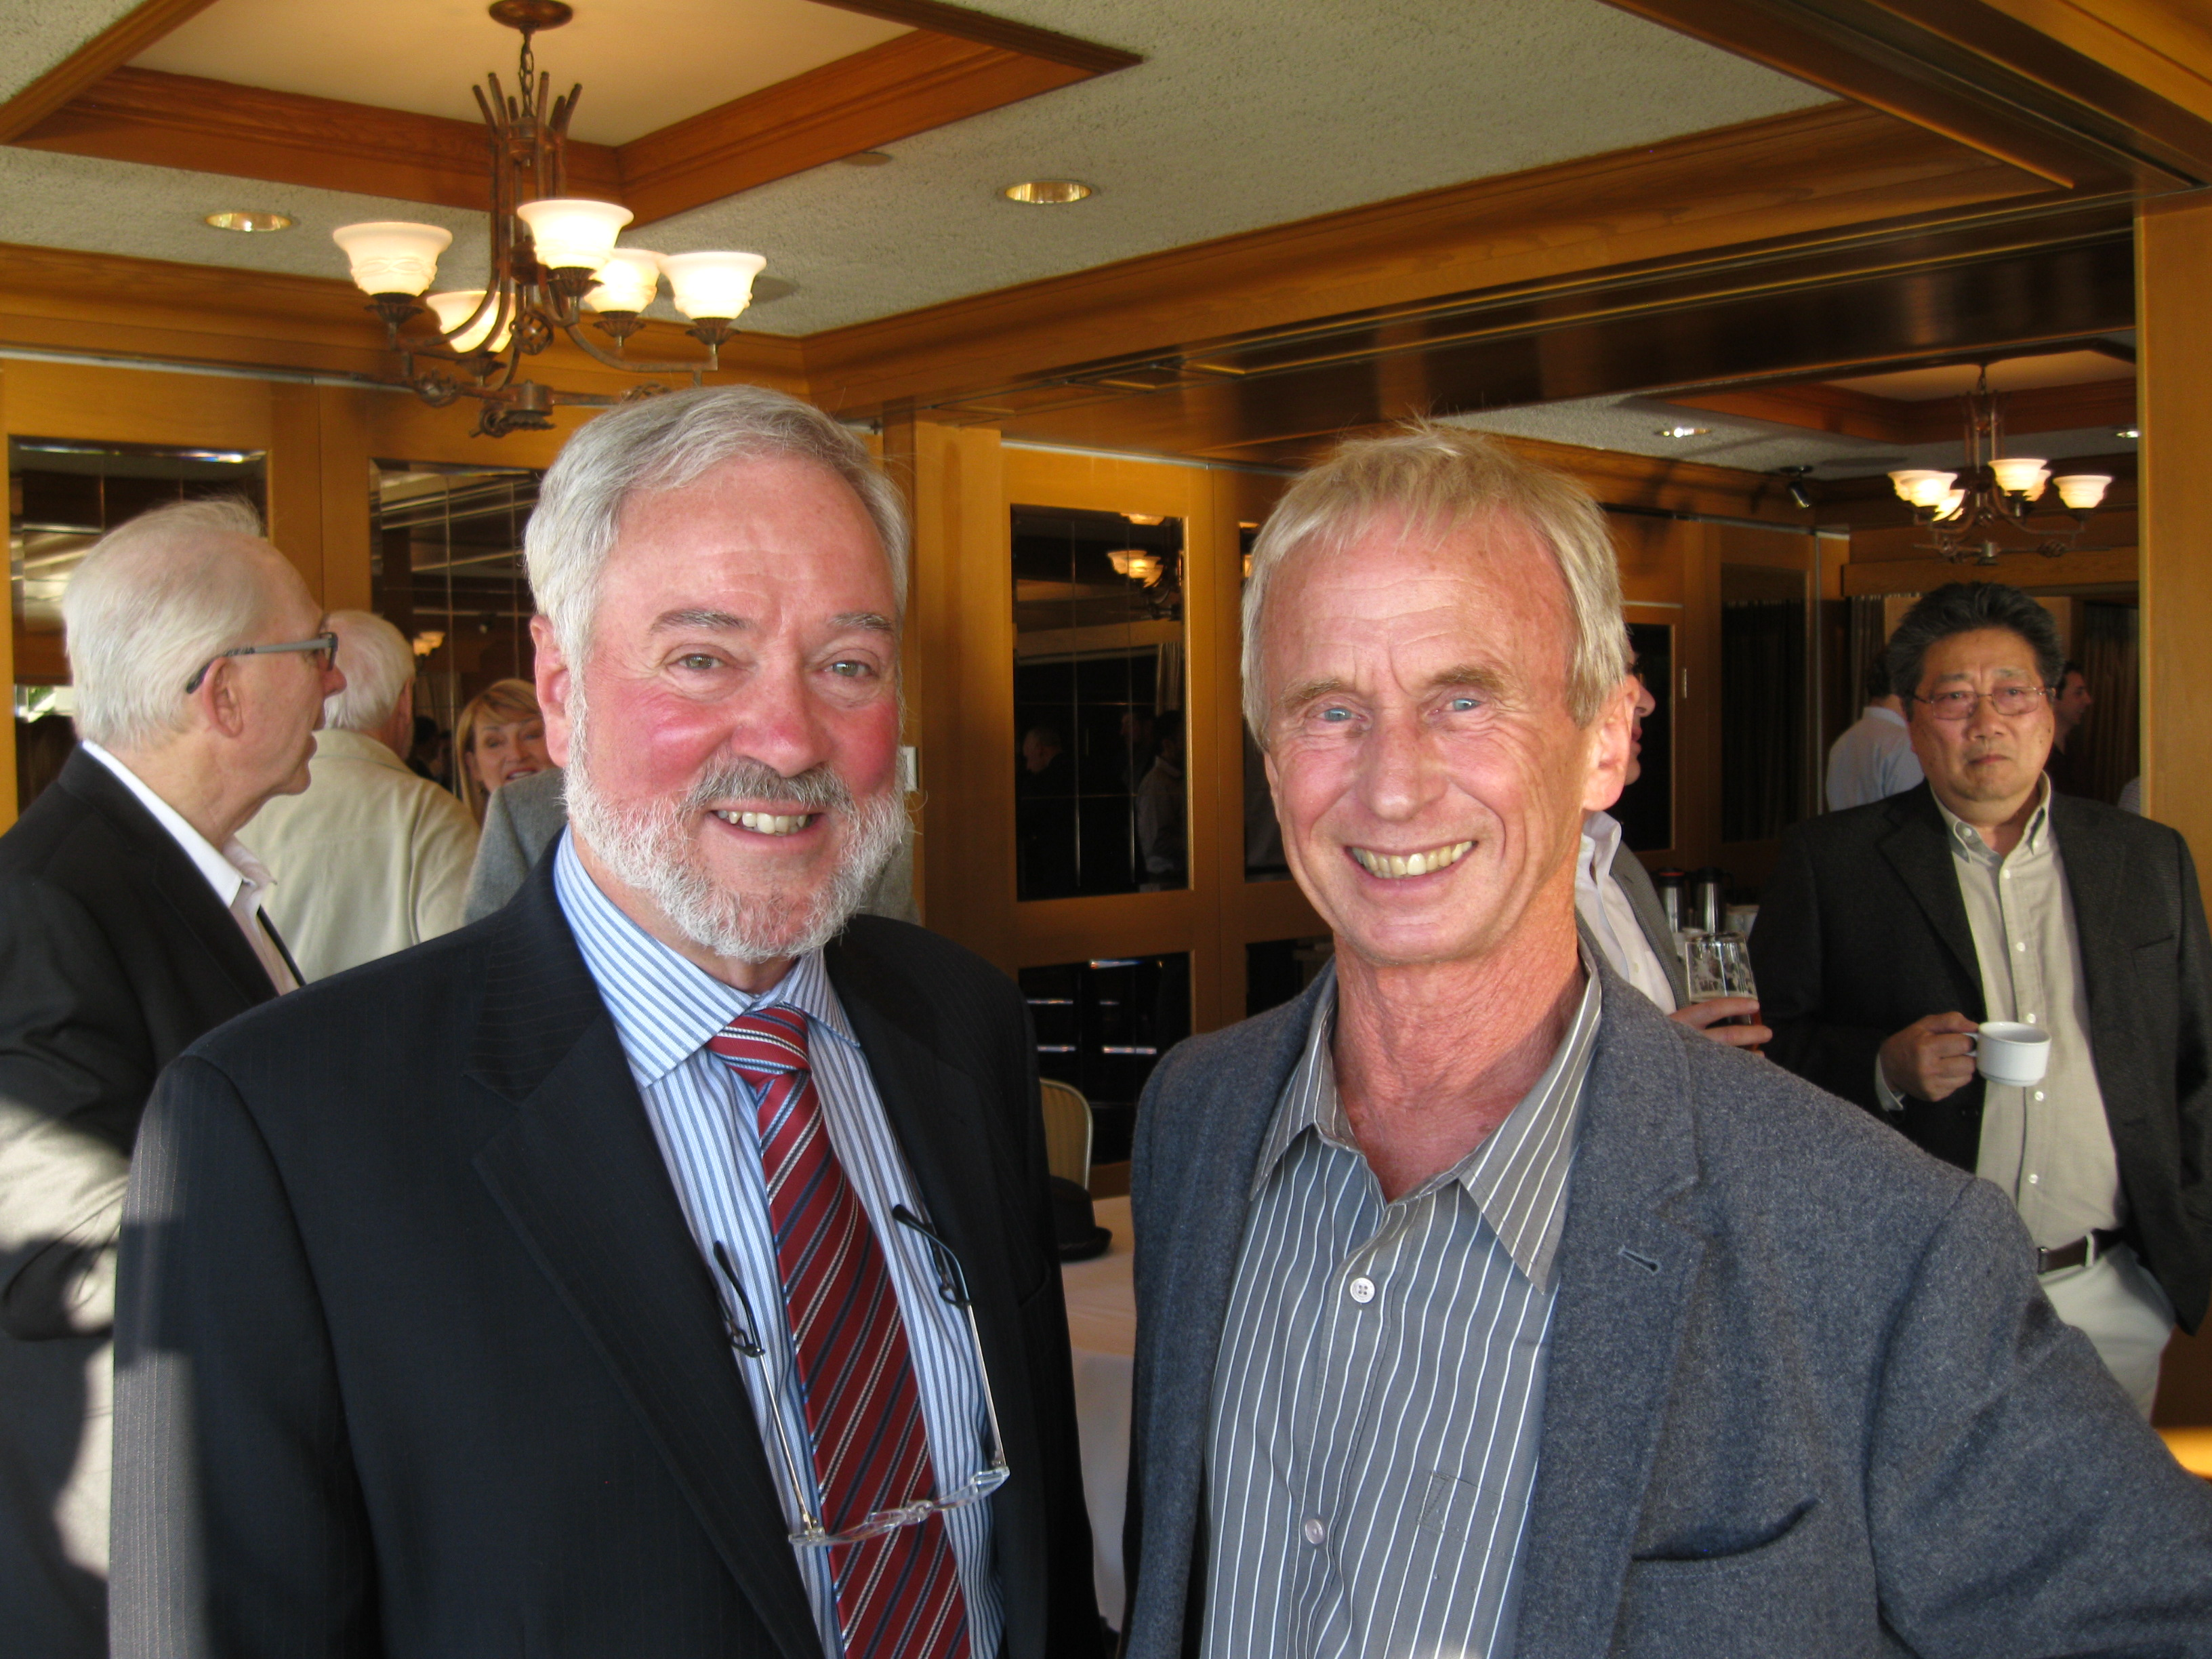 Ken Harford and Doug Kennedy at Harford's retirement party, April 29, 2016.